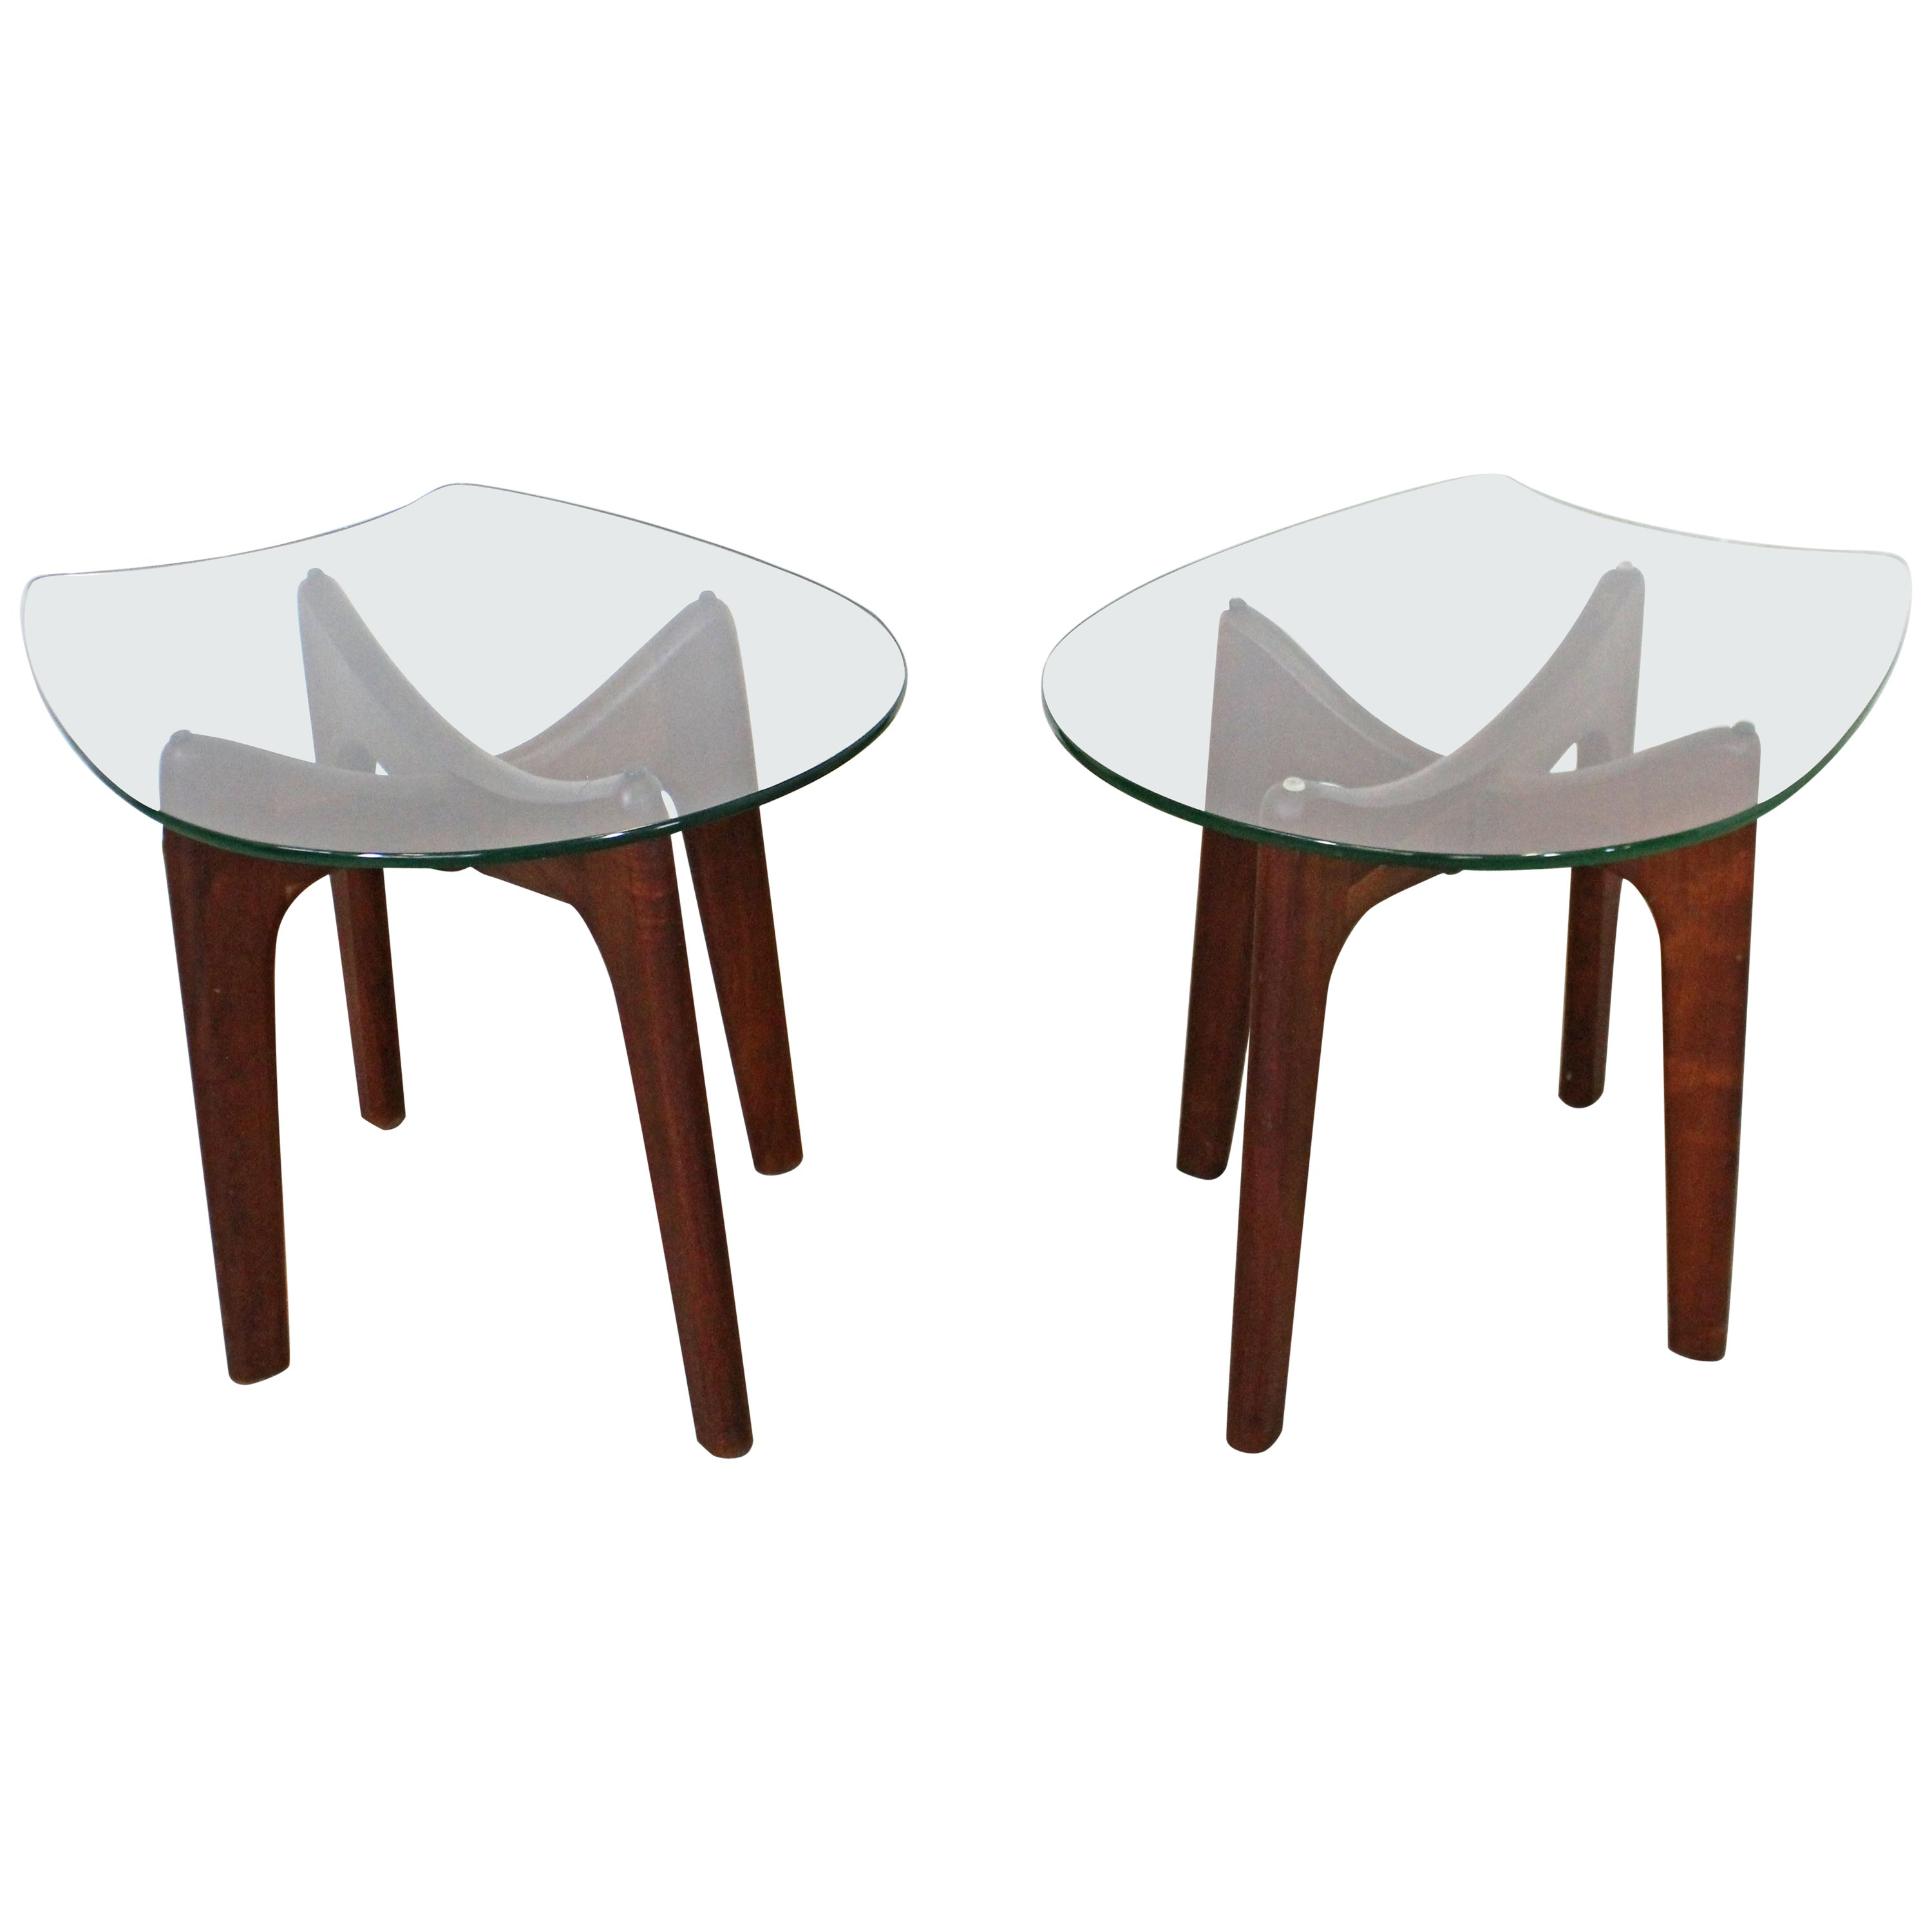 Pair of Mid-Century Modern Adrian Pearsall Stingray Glass Top End Tables